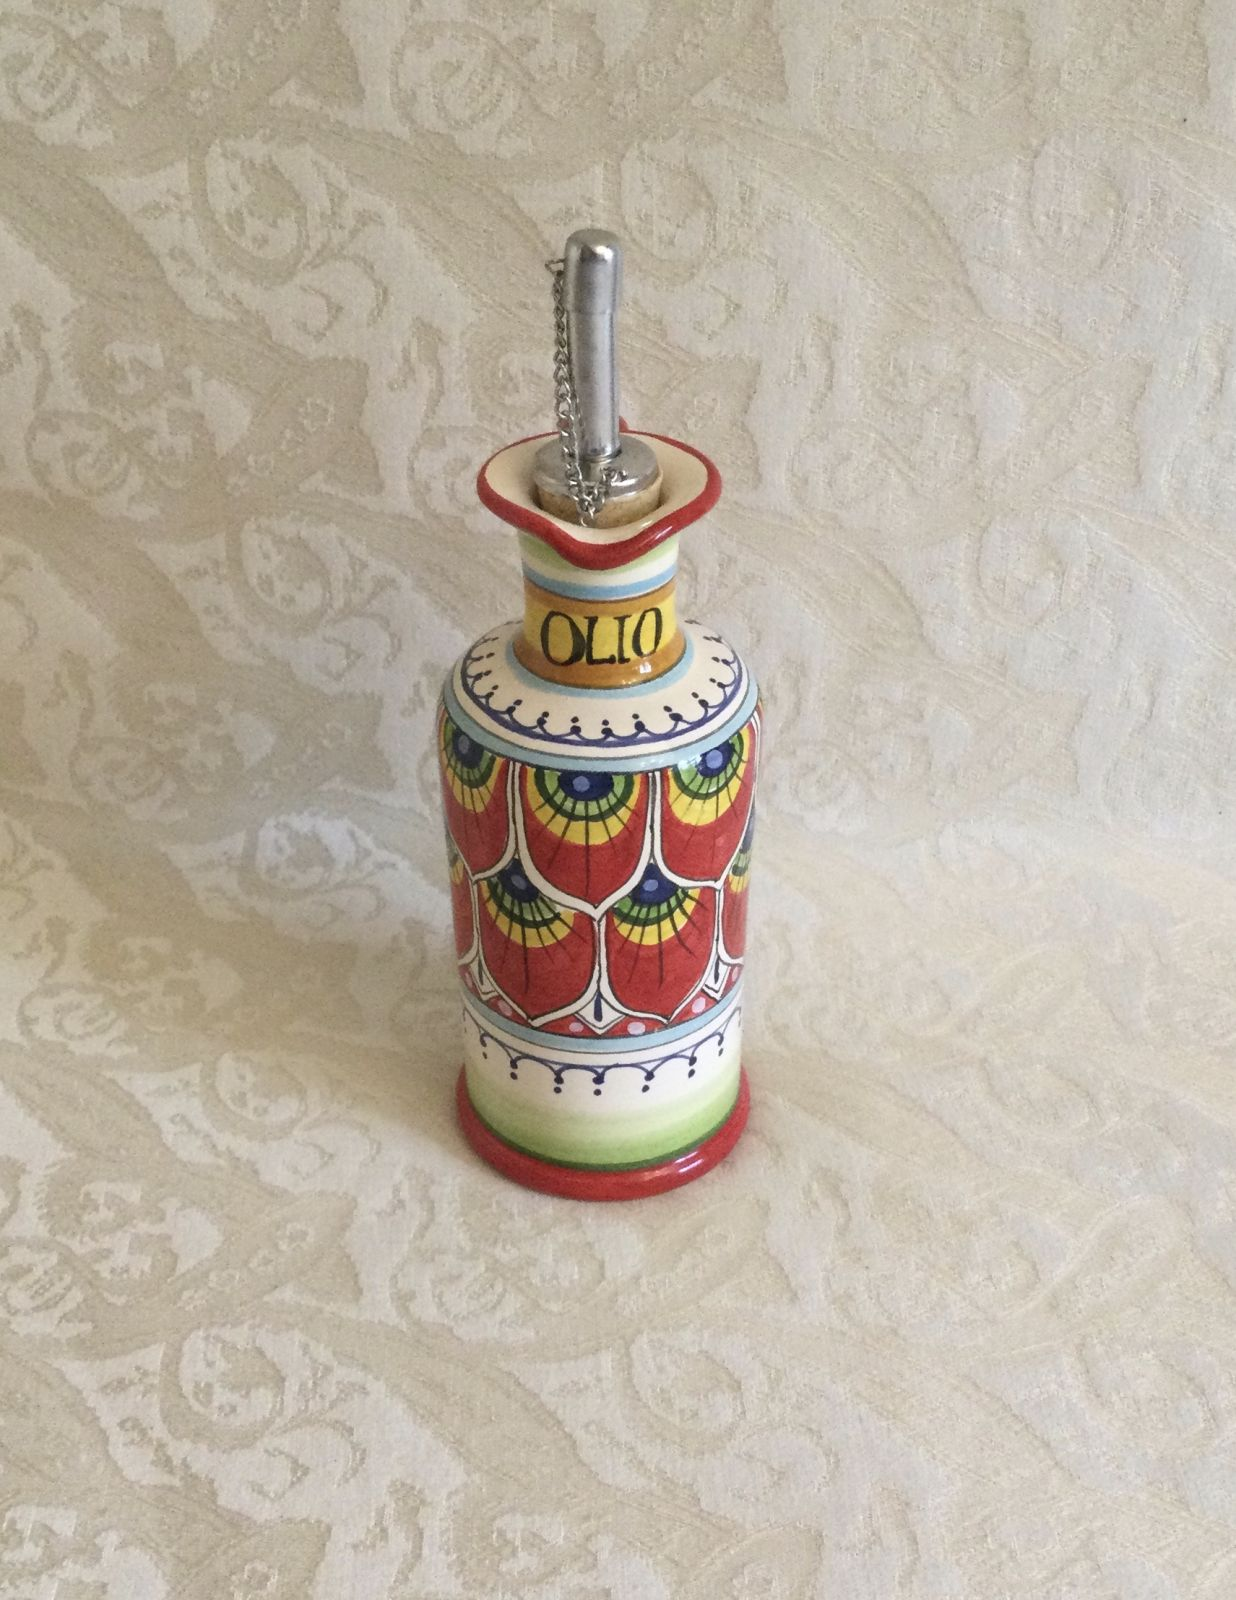 Oil cruet h16 with red peacock feather handle